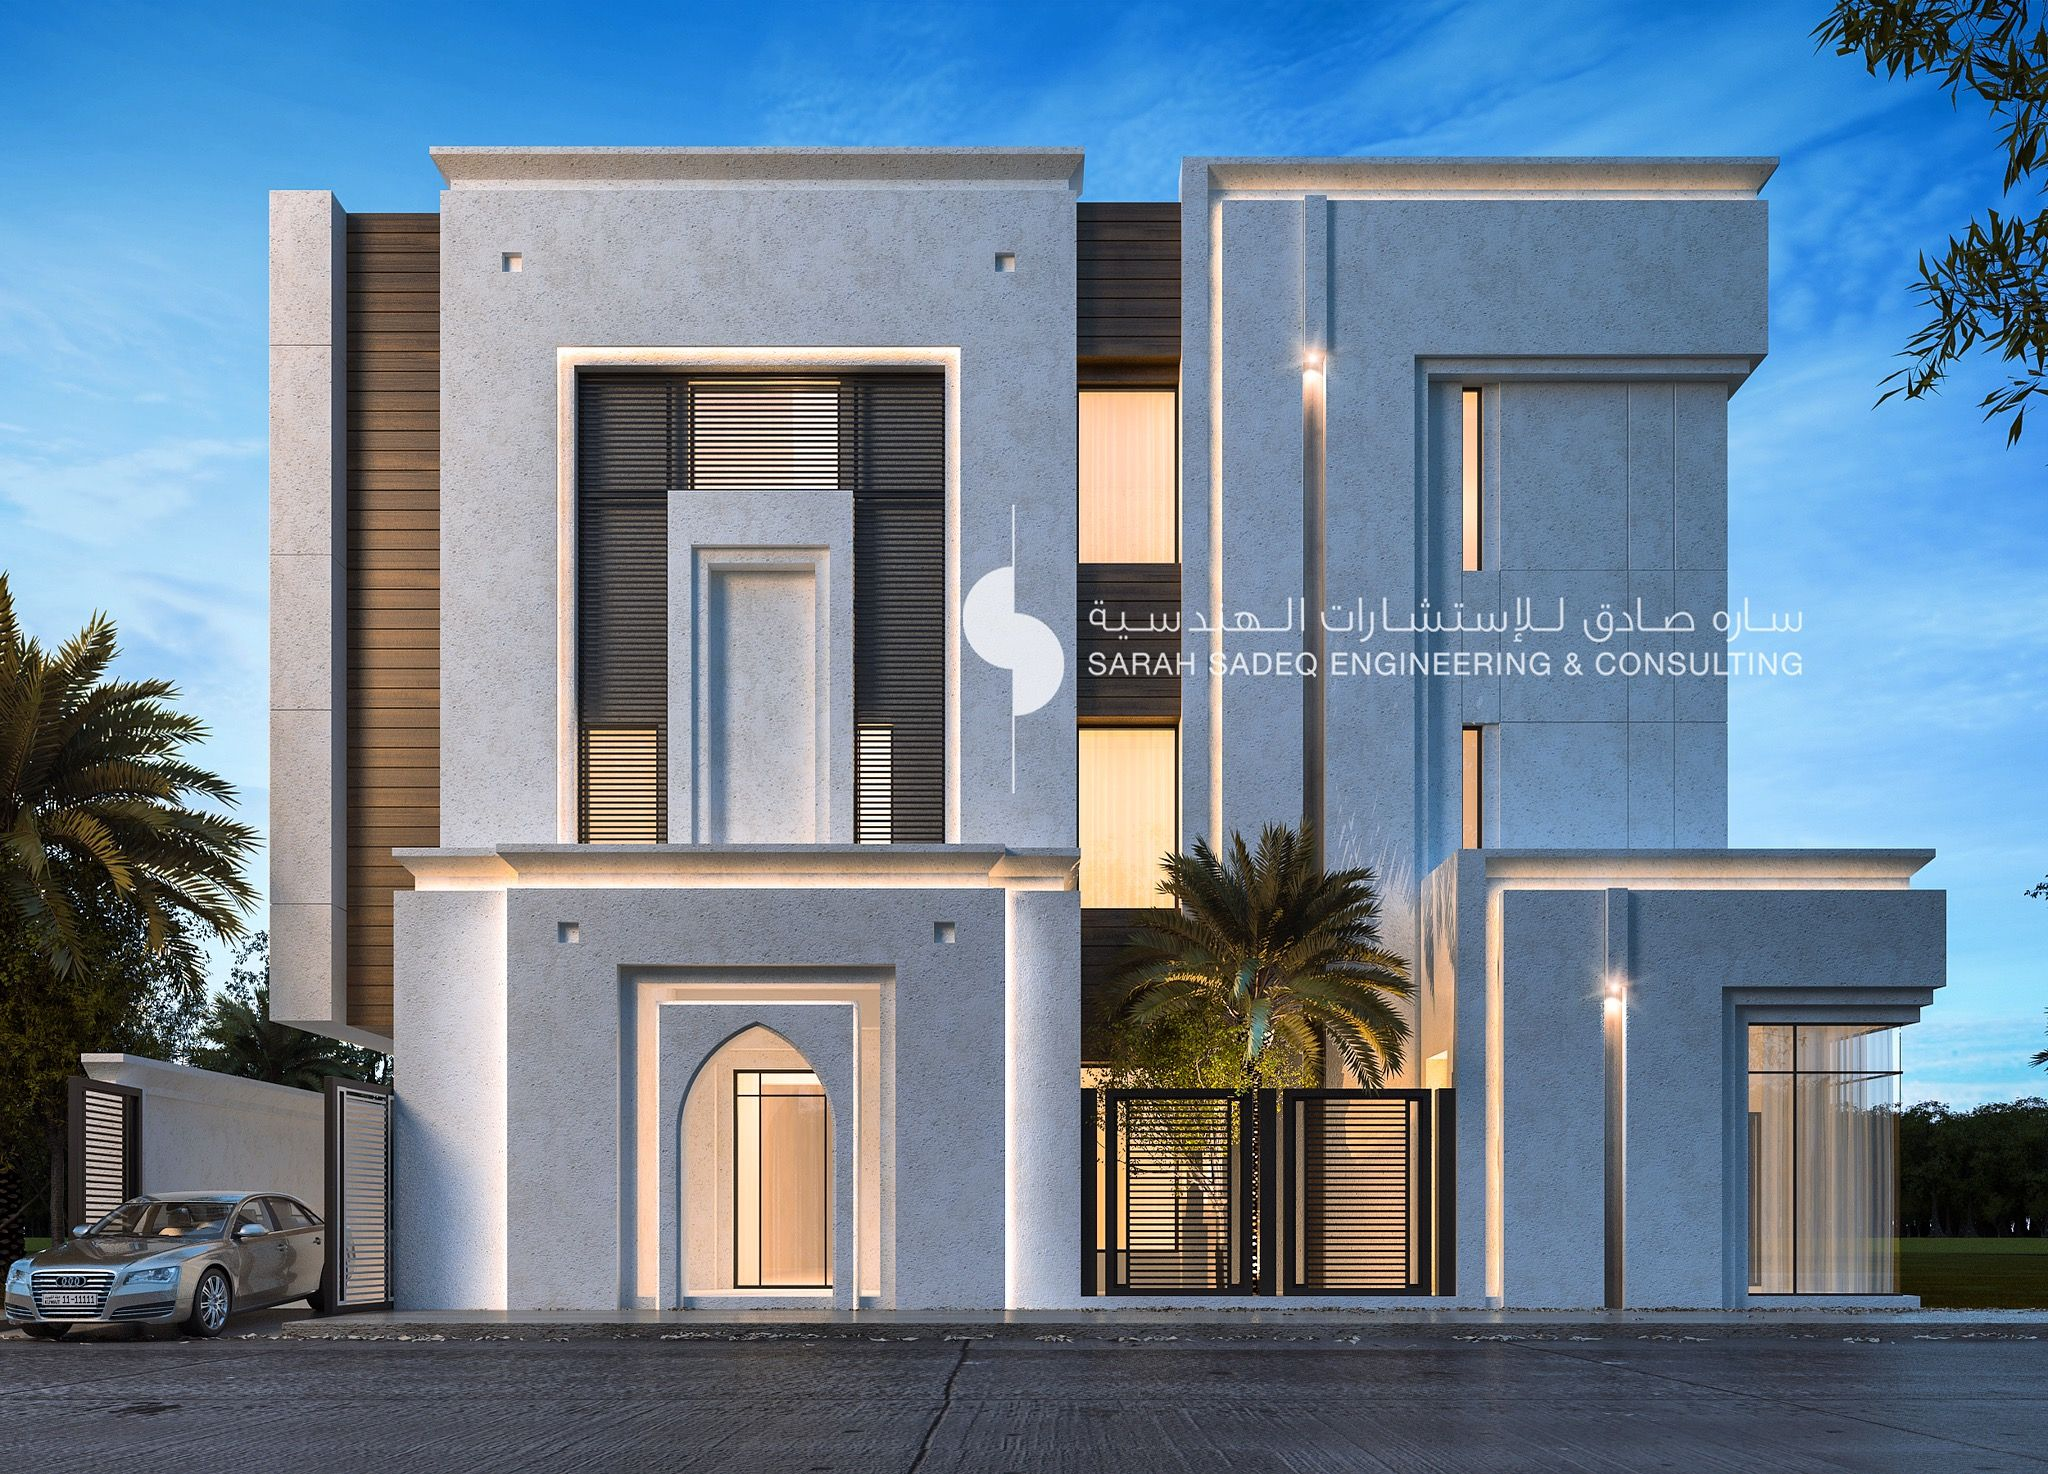 500 m private villa kuwait by sarah sadeq architects